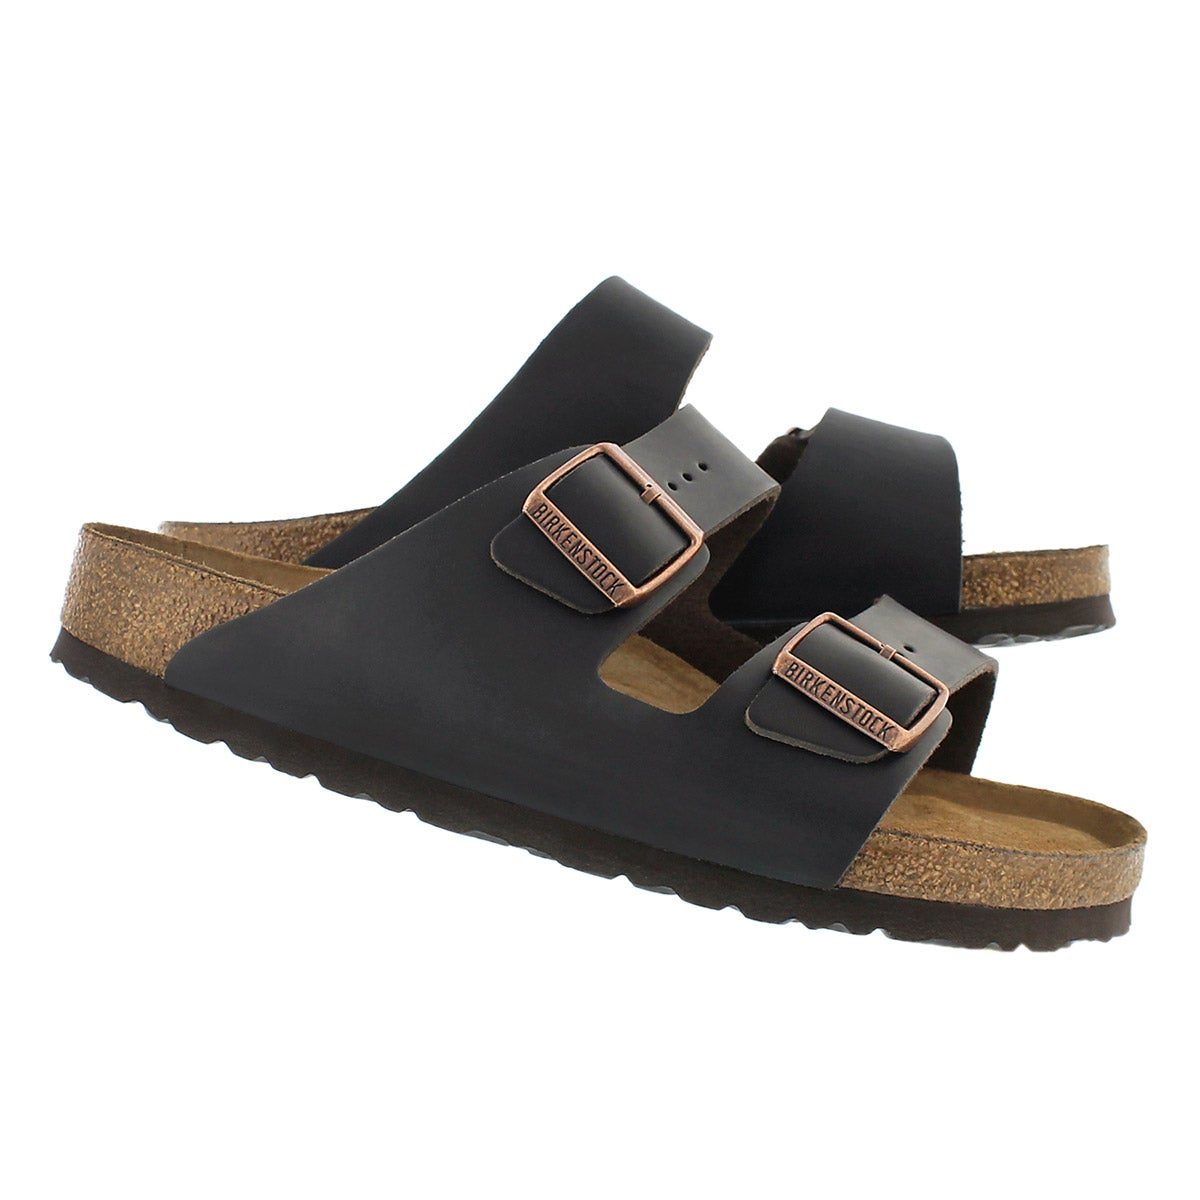 Mns Arizona brown 2 strap sandal SF